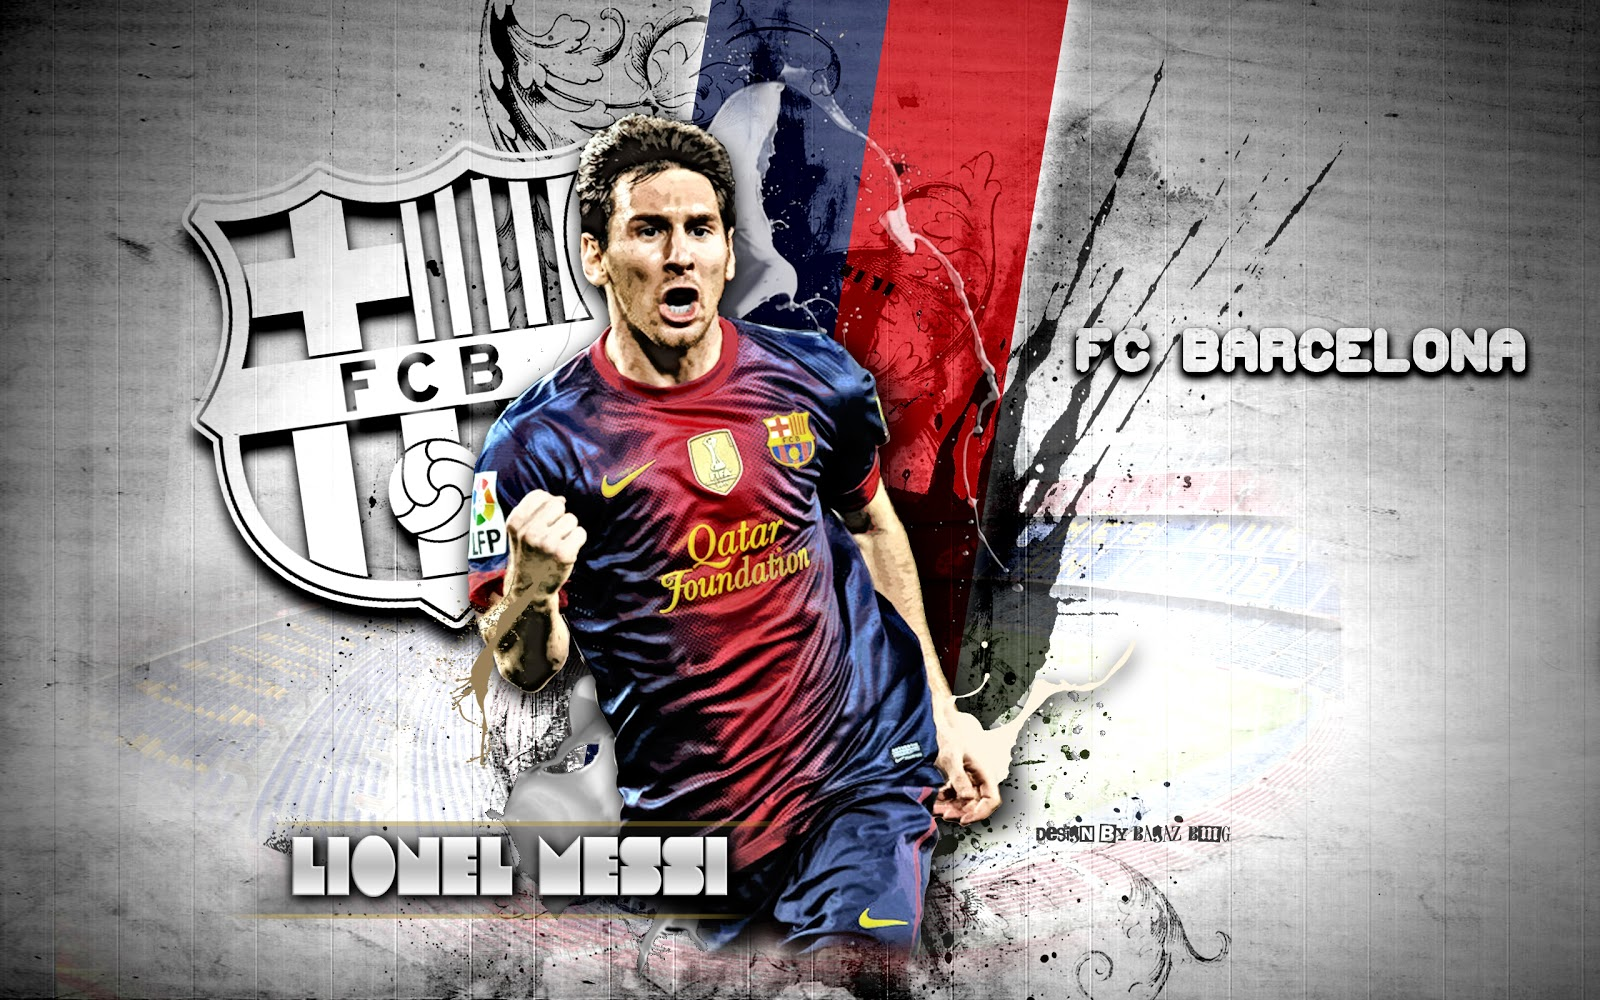 HD Wallpaper Barcelona 2013 Messi